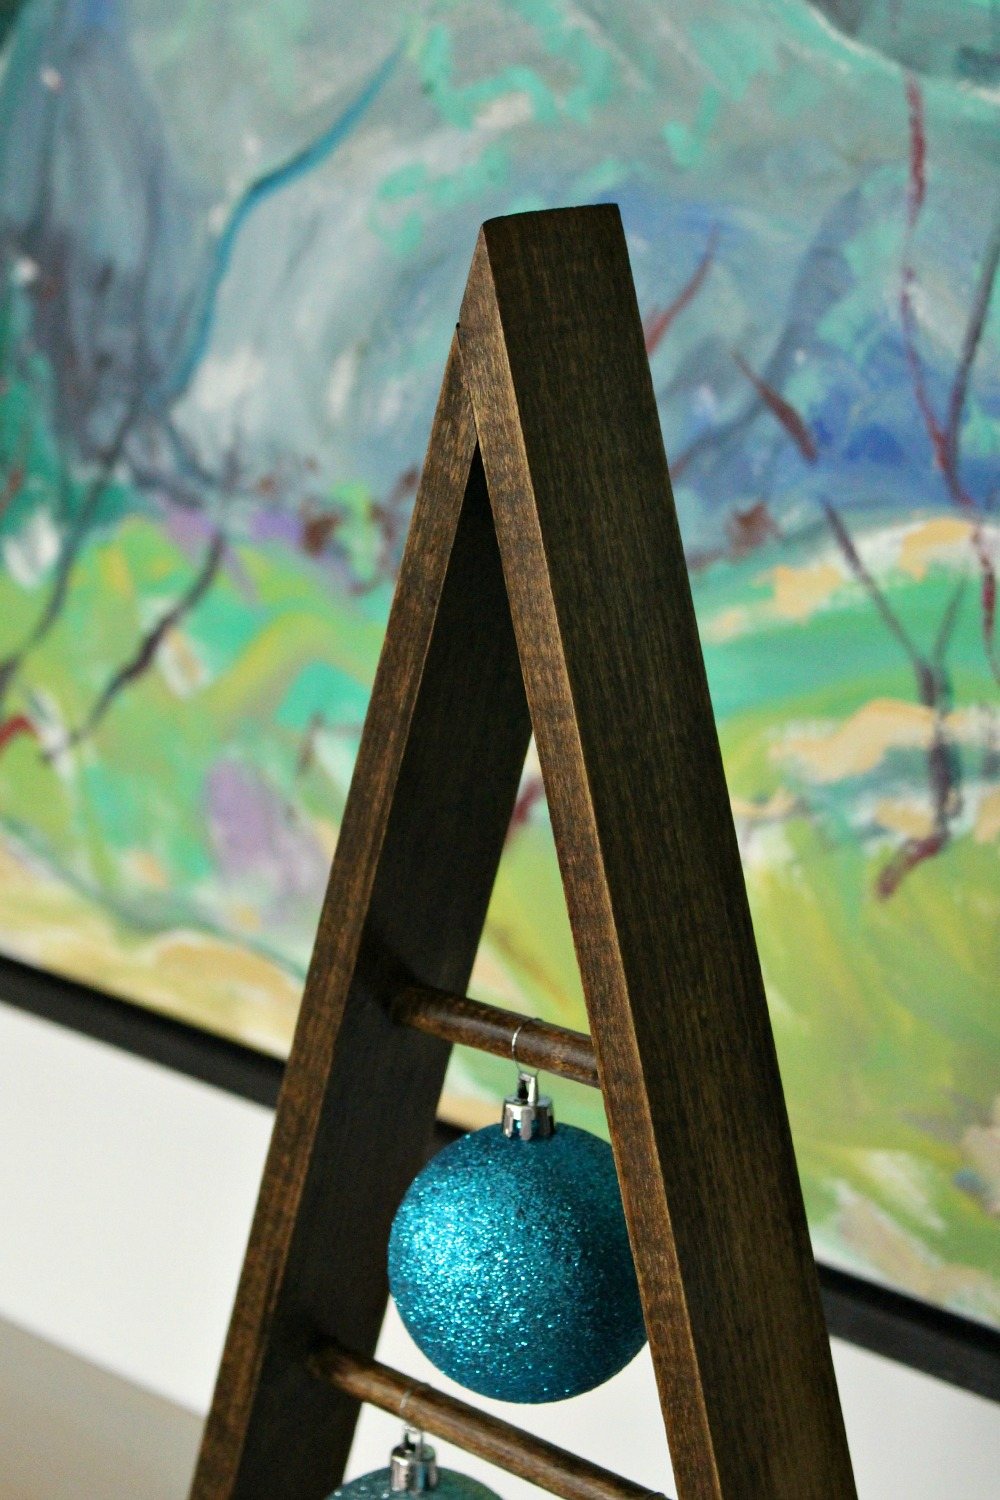 Build an a-frame display